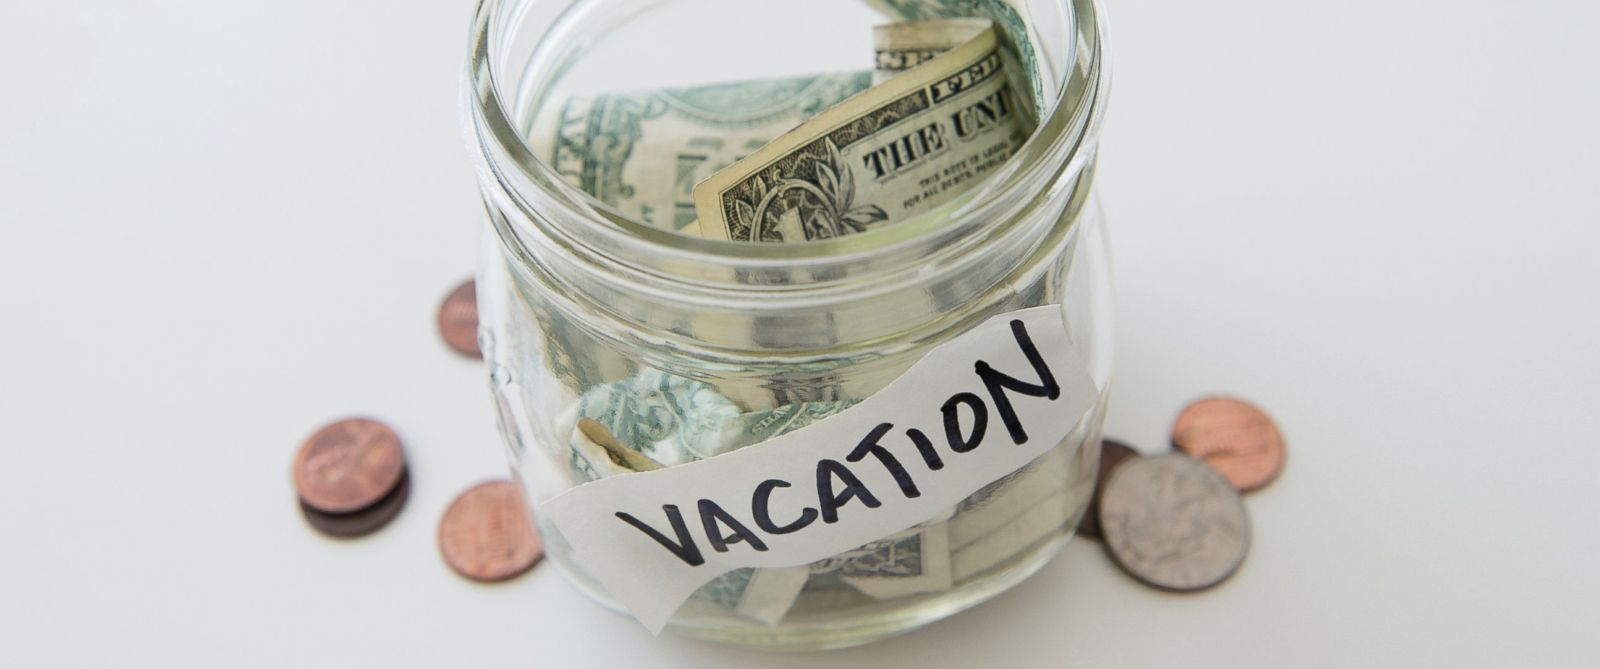 PHOTO: A vacation savings jar is pictured in this undated stock photo.